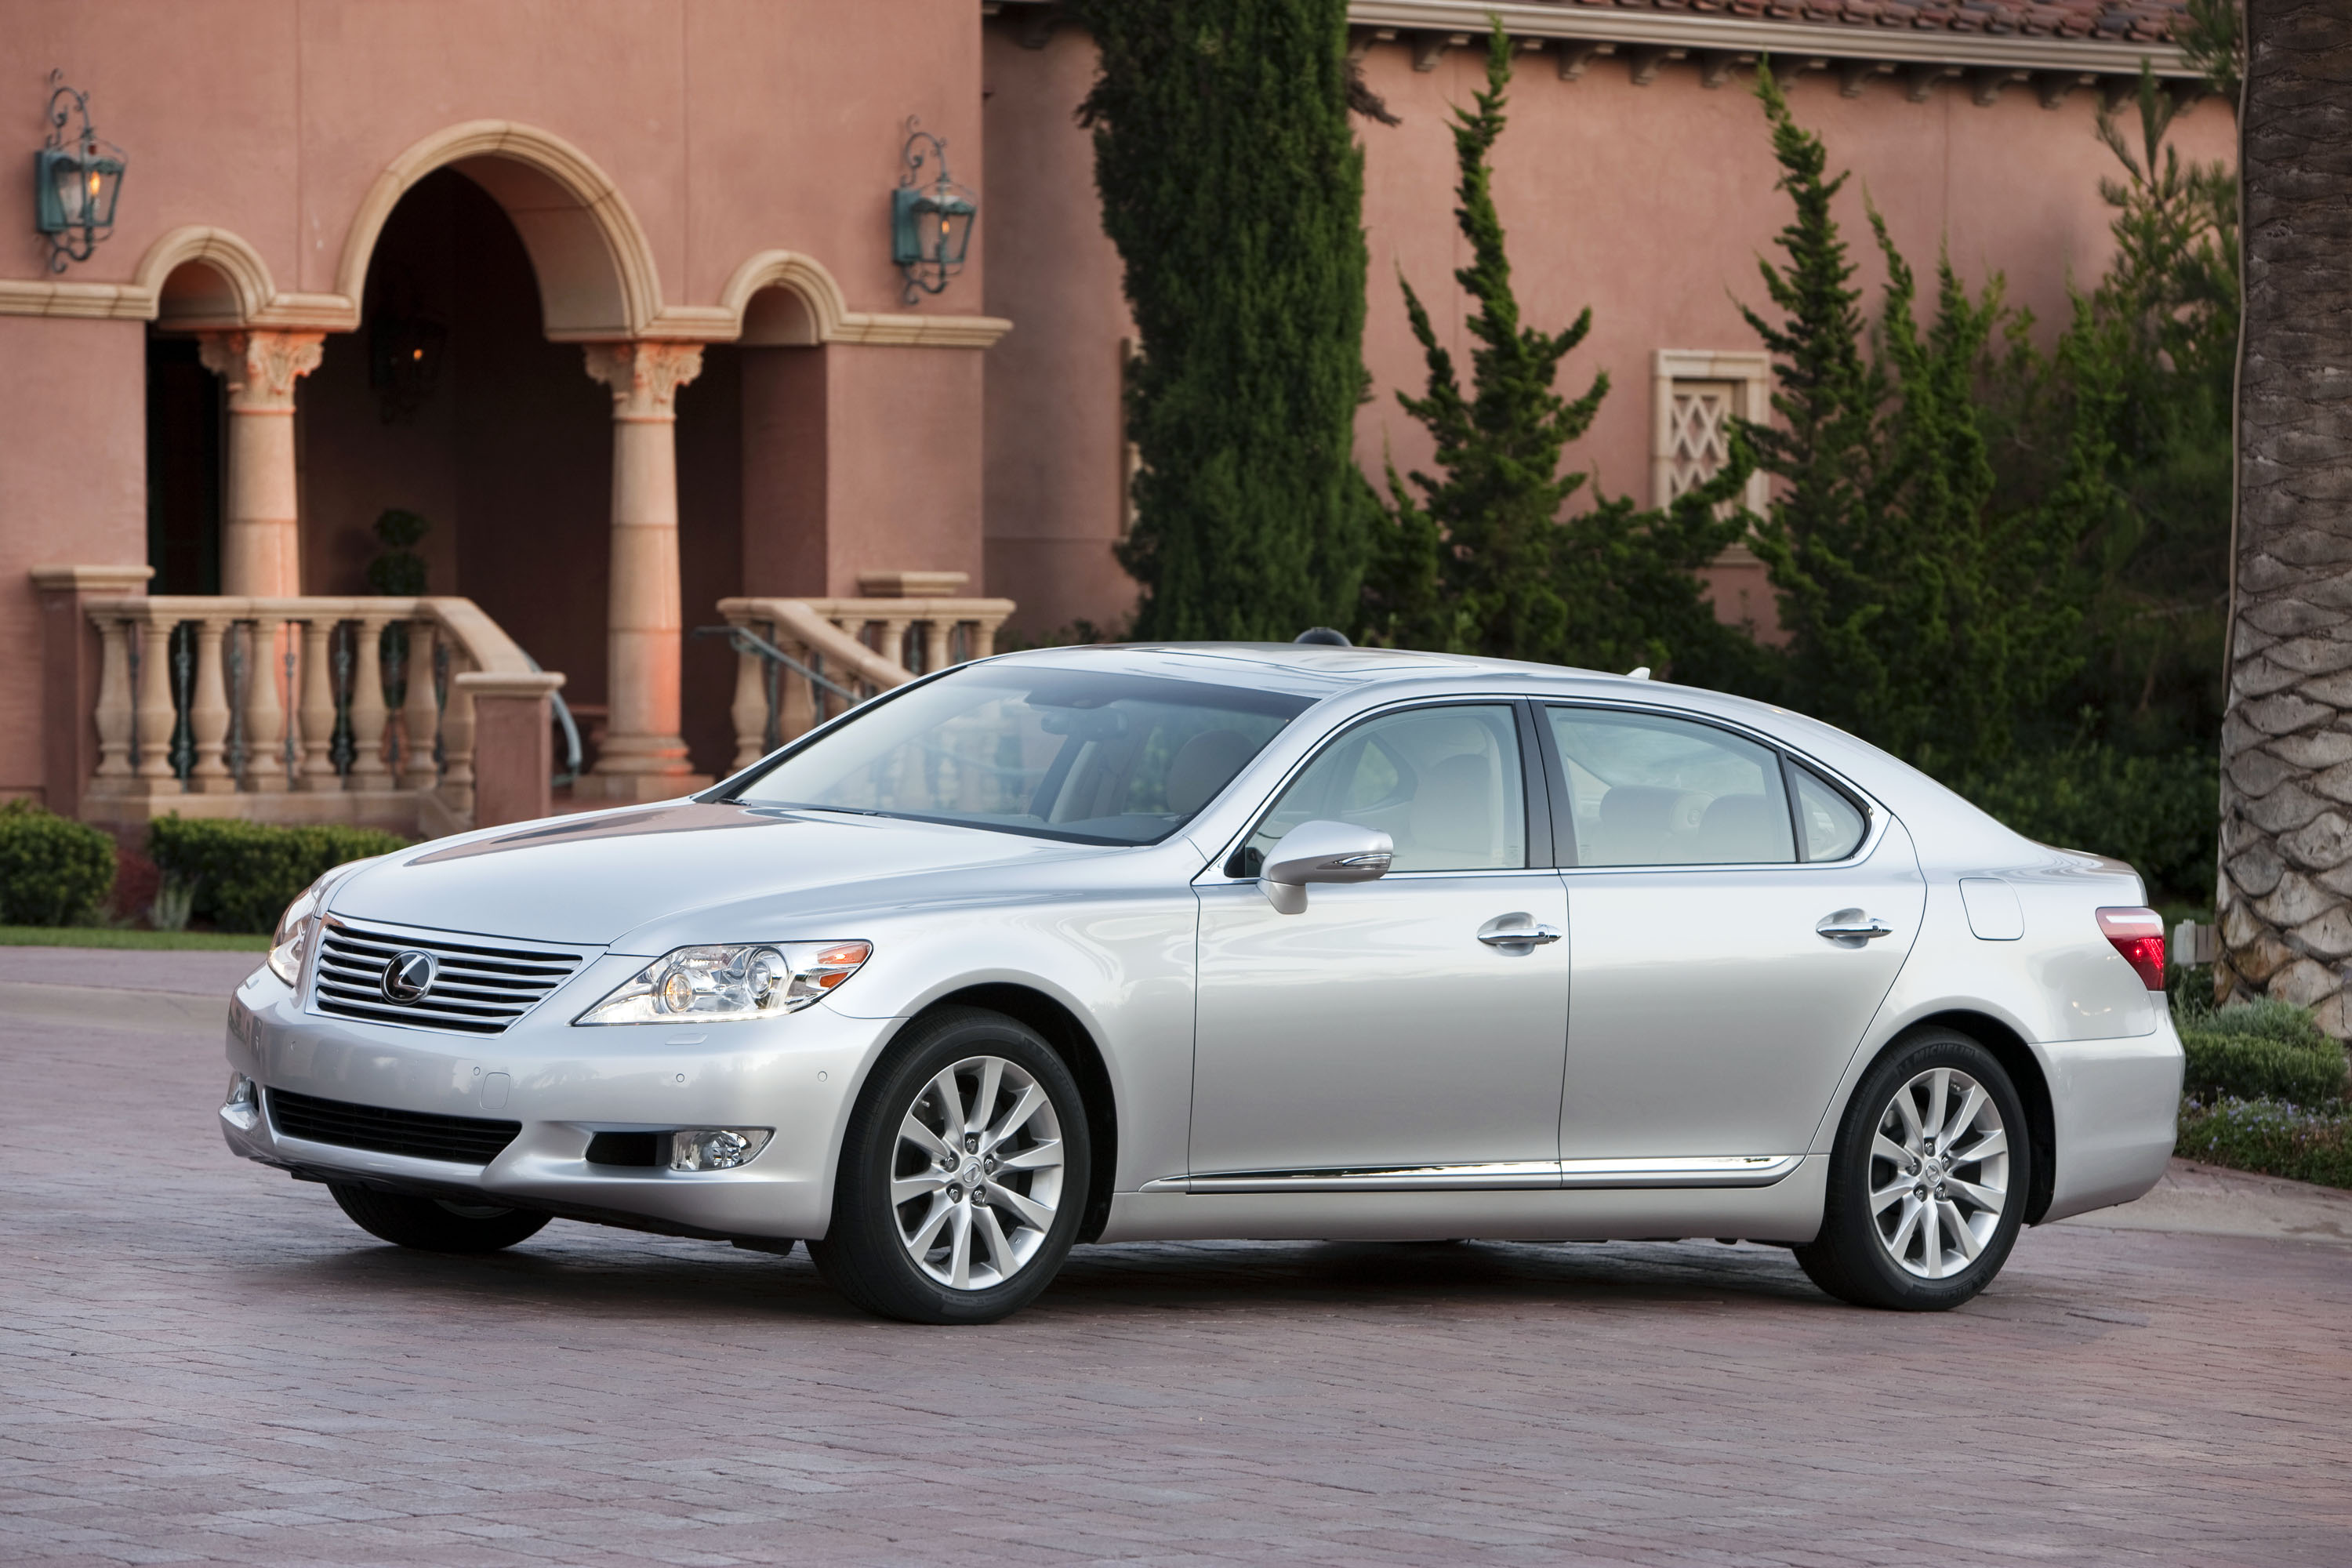 lexus review photos wheels mad images prices specification ls